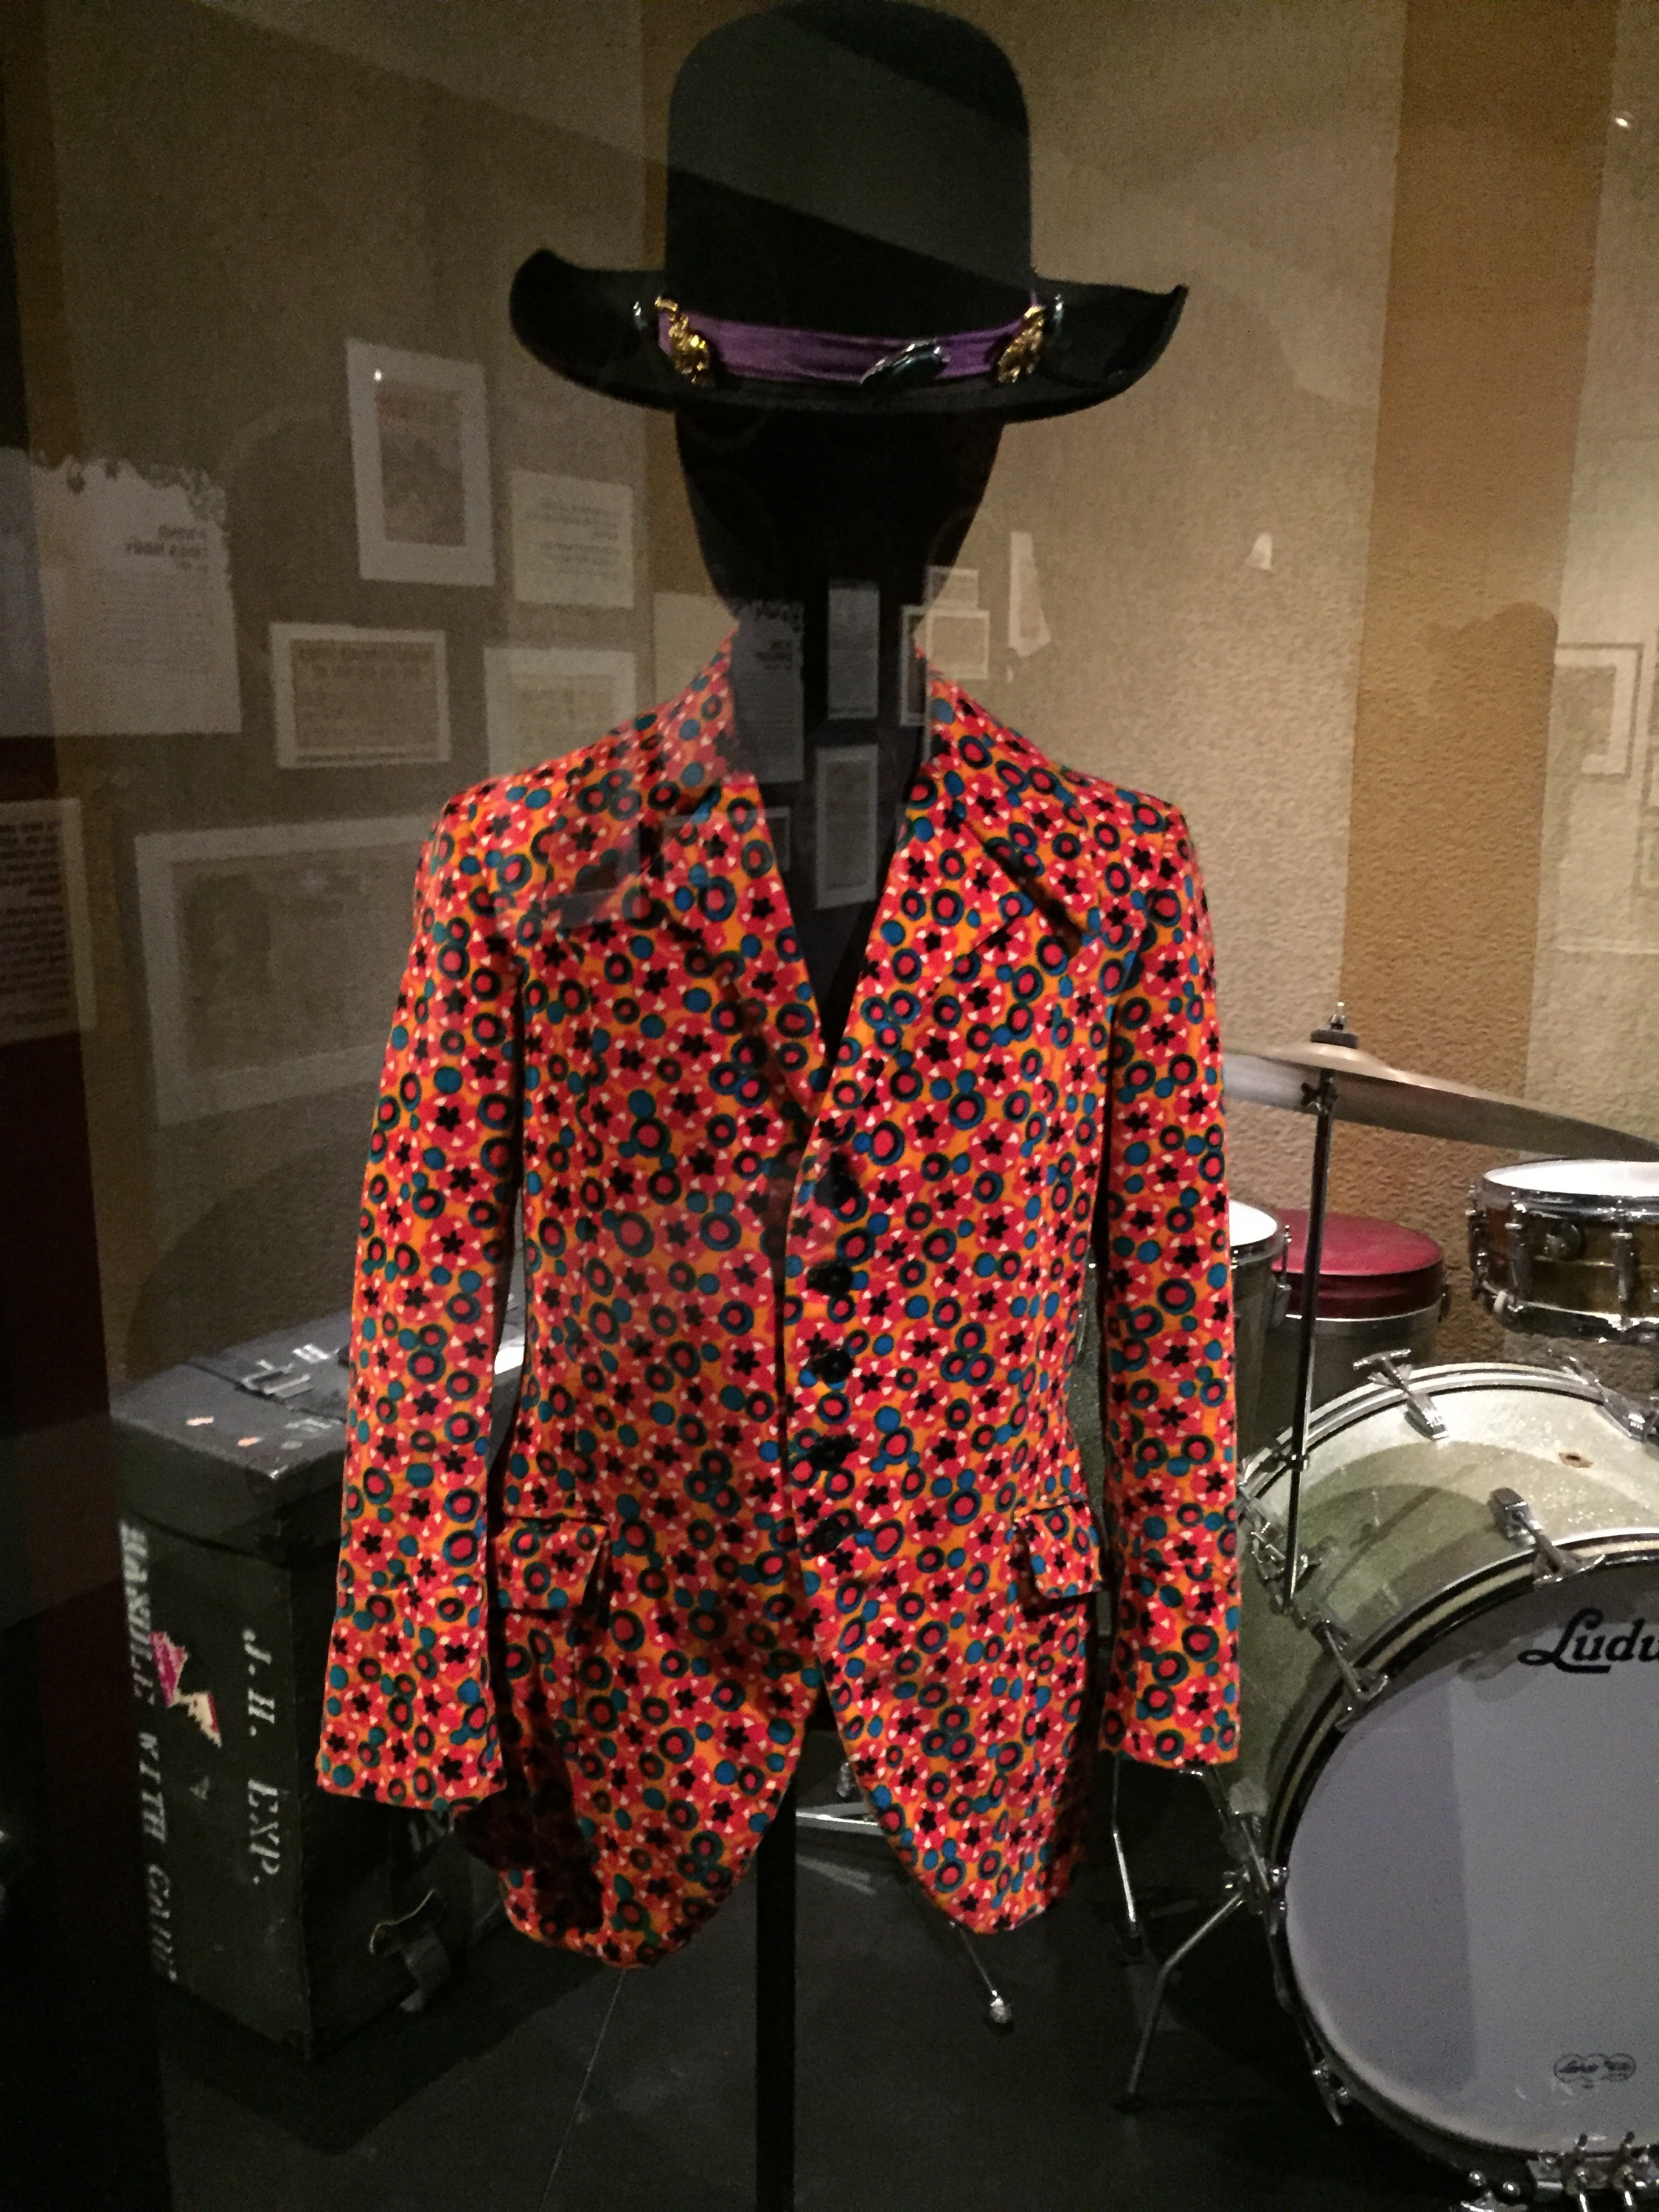 Outfit in the Jimi Hendrix exhibit